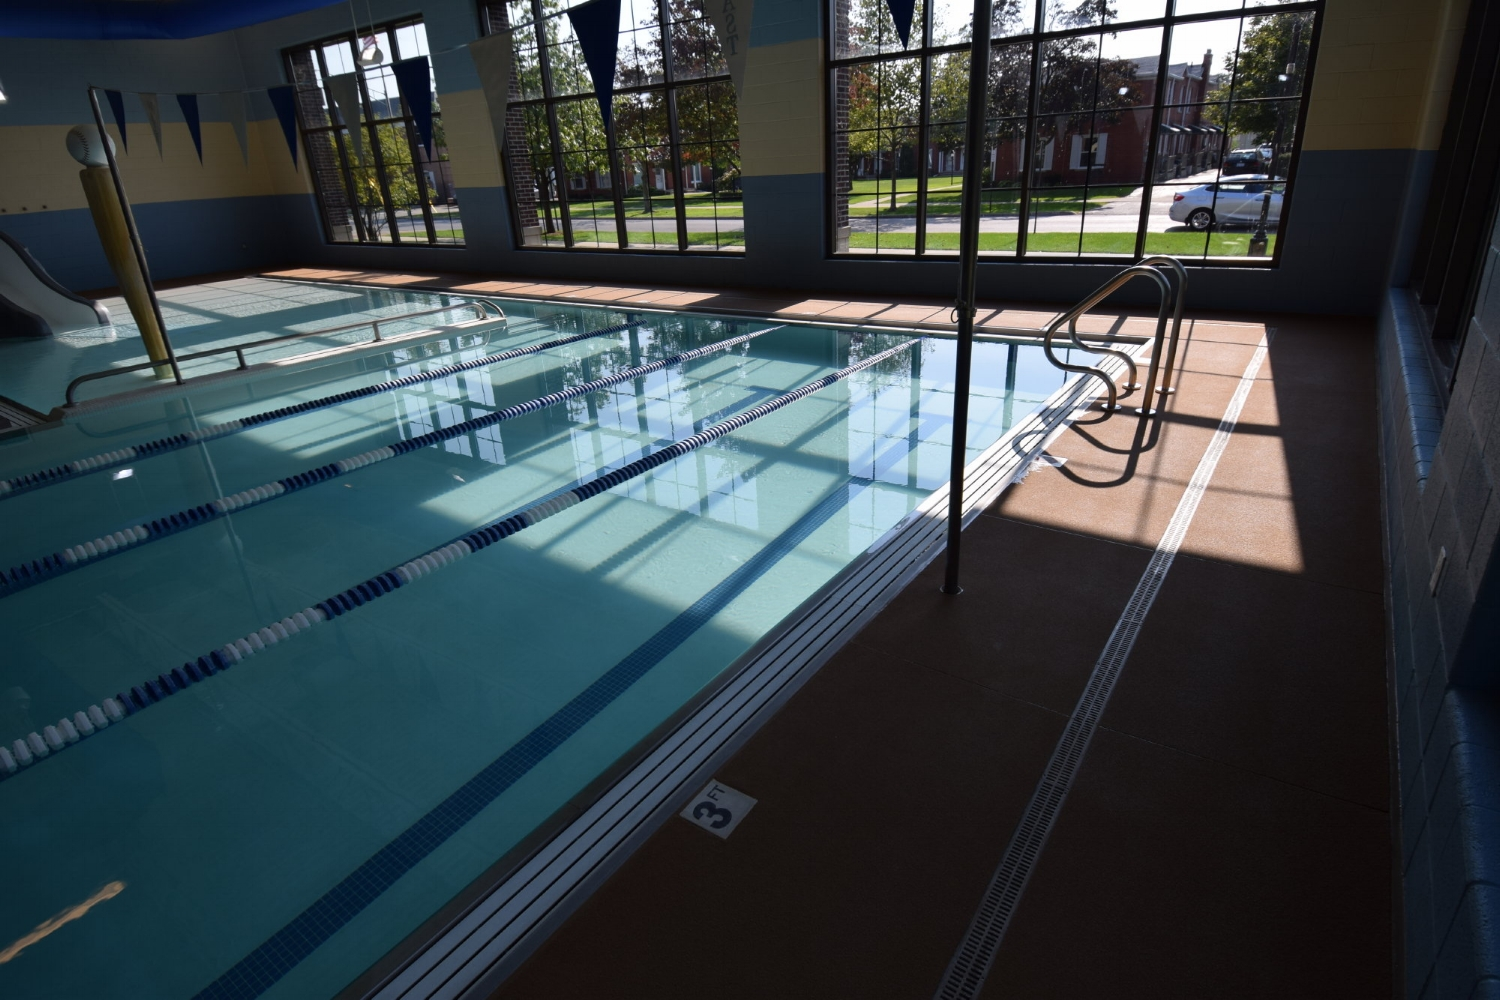 Commercial, Indoor Concrete Pool Deck After Resurfacing With Integrally-Colored, Spray-Texture, Decorative Cement Overlay And Removing Masking Plastic